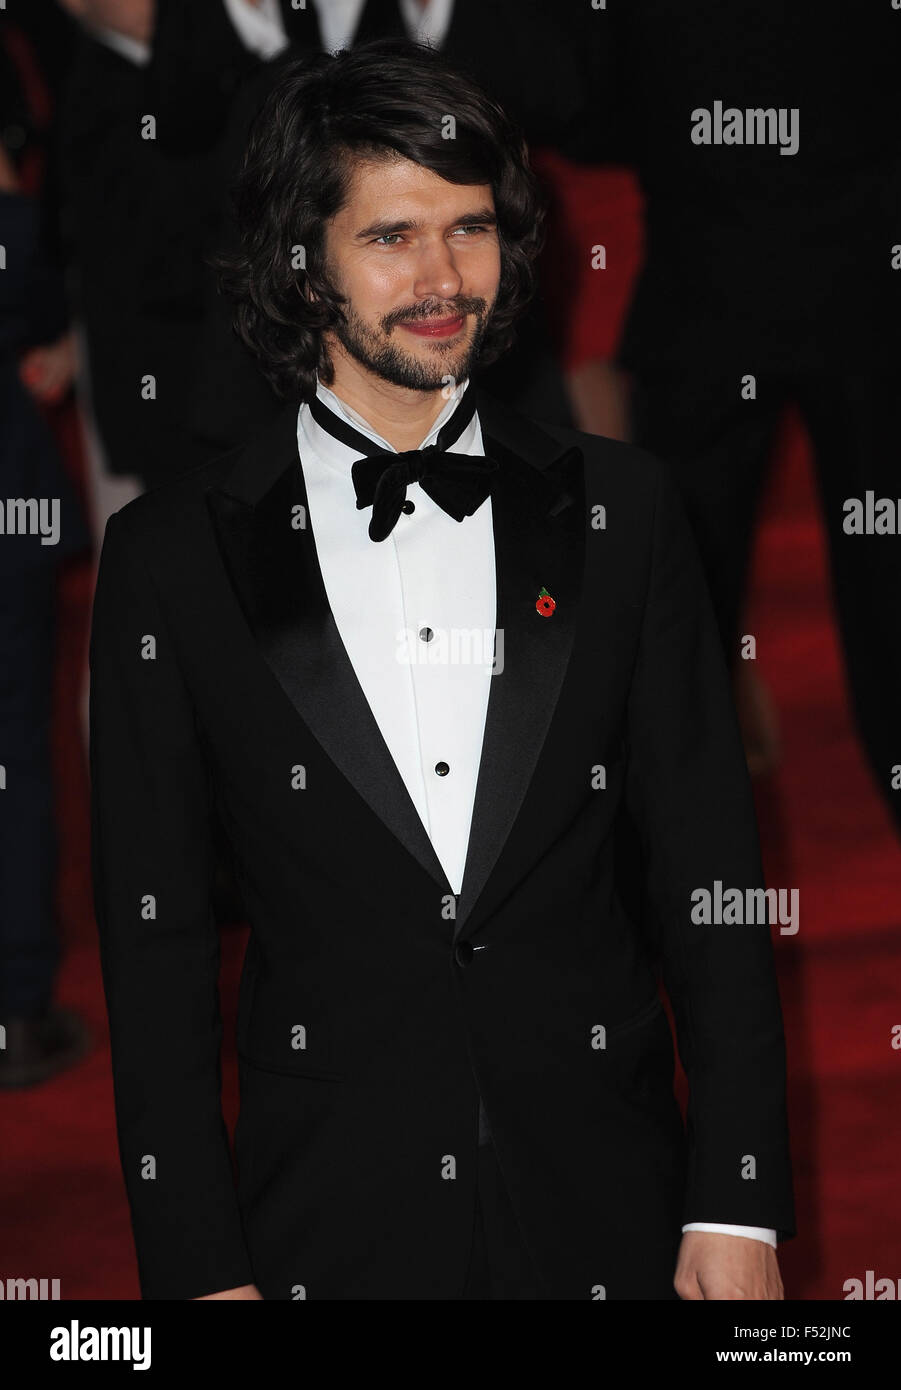 London, Uk. 26th Oct, 2015. Ben Whishaw attends the Royal World Premiere of 'Spectre' at Royal Albert Hall. - Stock Image